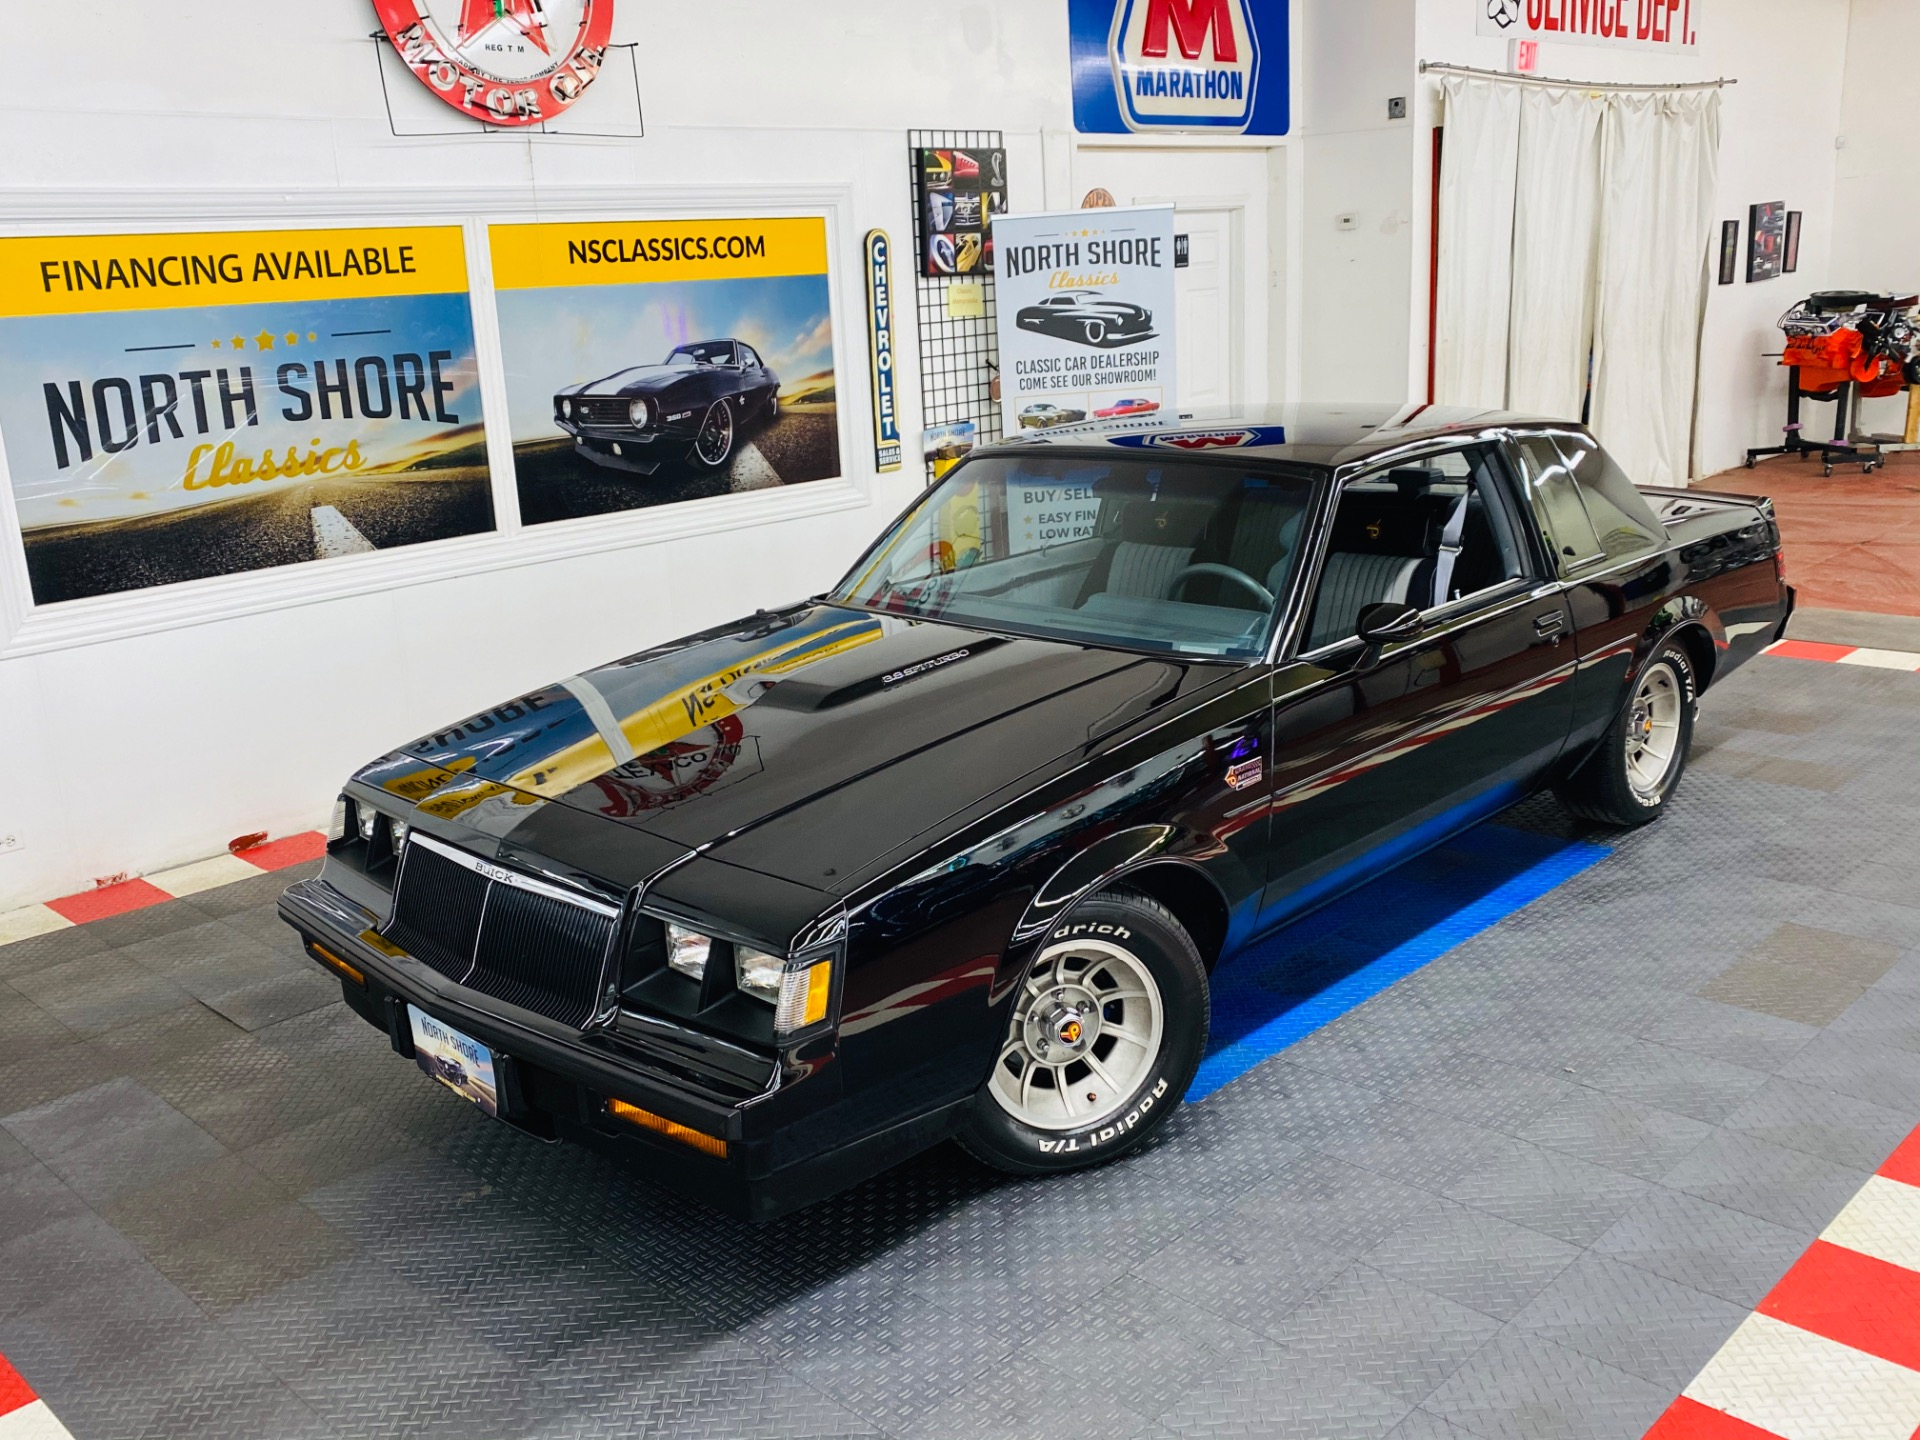 Used 1986 Buick Grand National - LOW MILES - ORIGINAL PAINT - SUPER CLEAN BODY AND FLOORS - SEE VIDEO - | Mundelein, IL